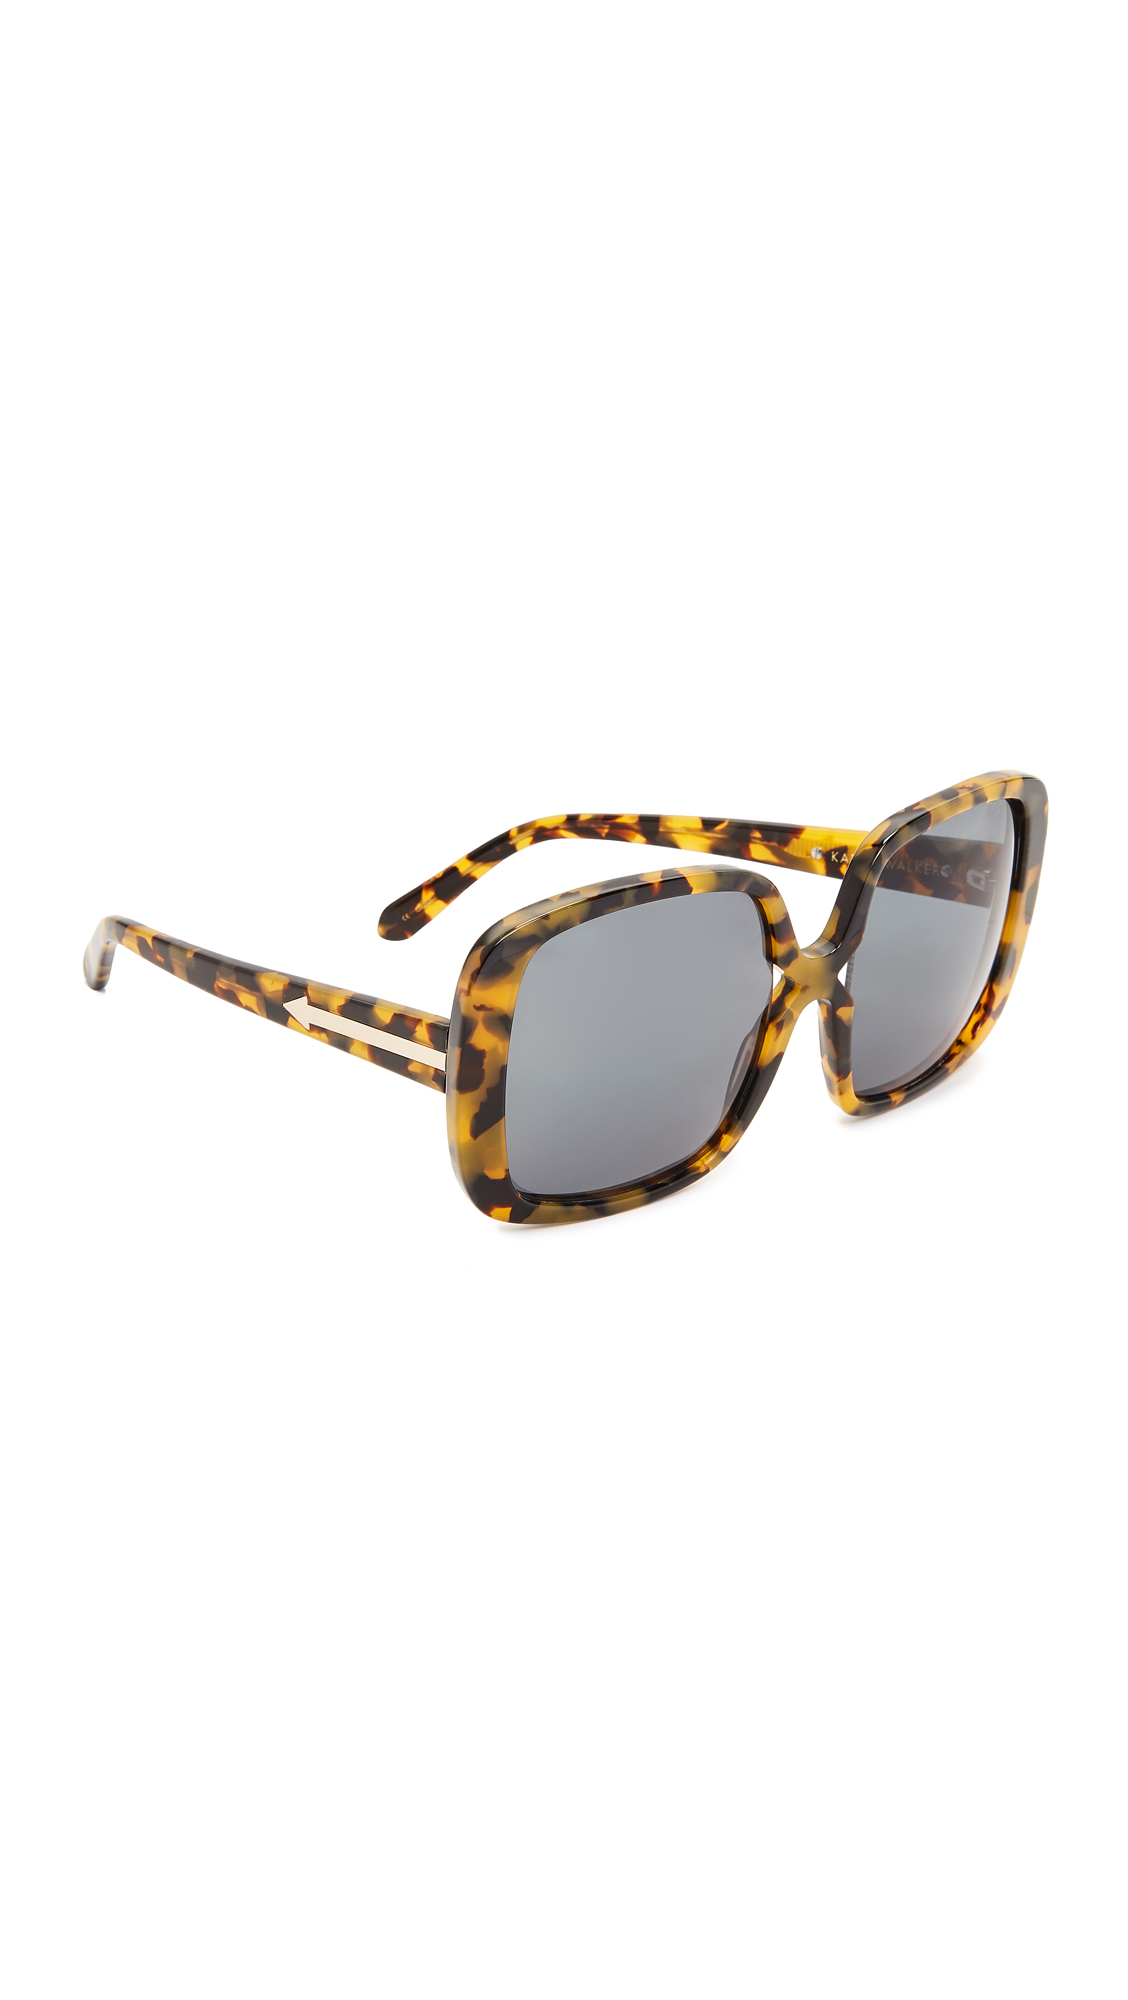 Oversized frames give these Karen Walker sunglasses a distinct, dramatic look. Hard case and cleaning cloth included. Oversized frame. Non polarized lenses. Imported, China. Measurements Width: 6in / 15cm Height: 2.75in / 7cm Lens Width: 56mm. Available sizes: